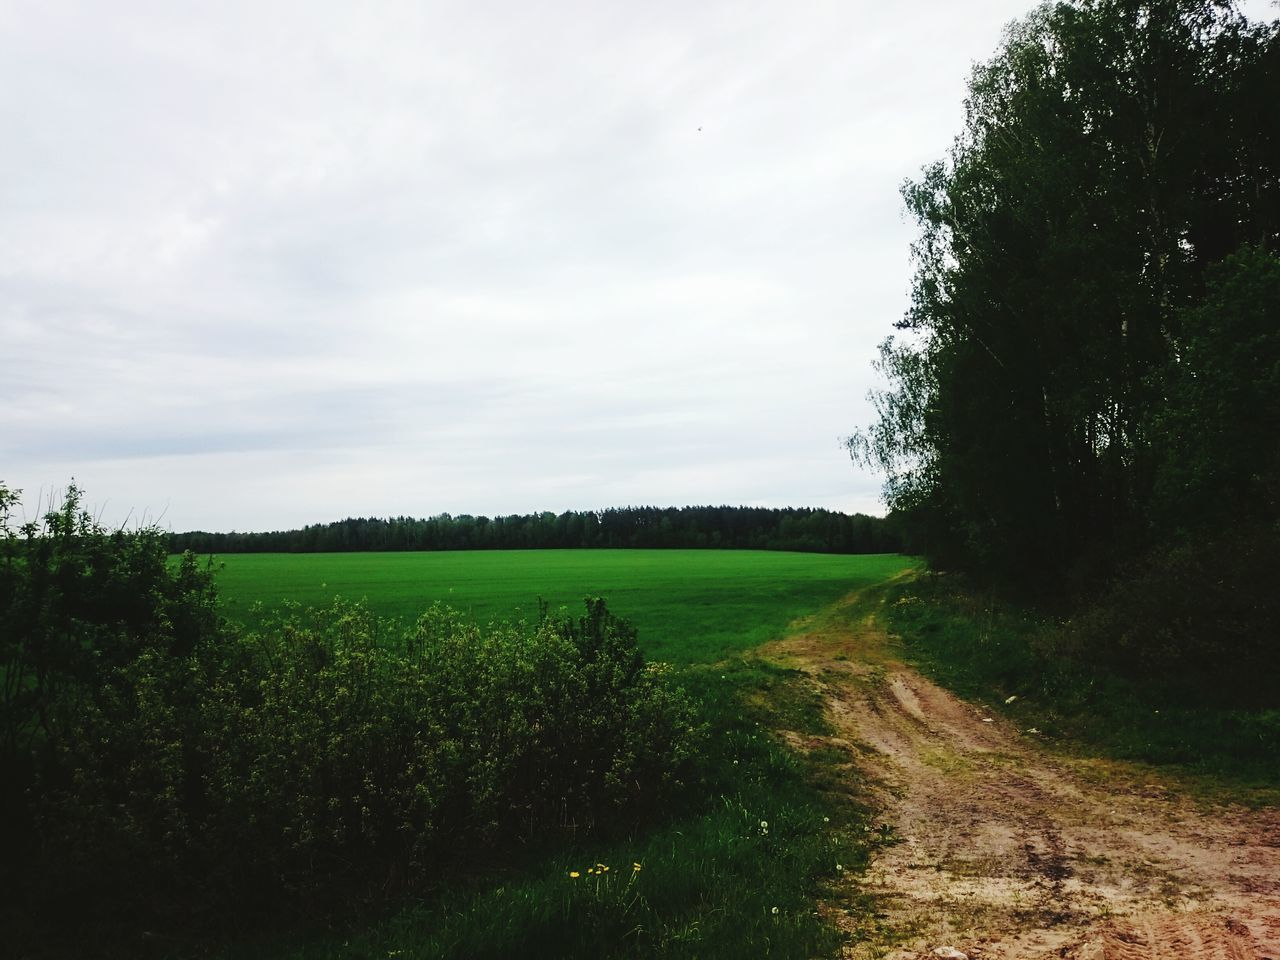 tree, grass, nature, landscape, field, growth, tranquil scene, green color, tranquility, scenics, beauty in nature, no people, agriculture, plant, day, sky, rural scene, outdoors